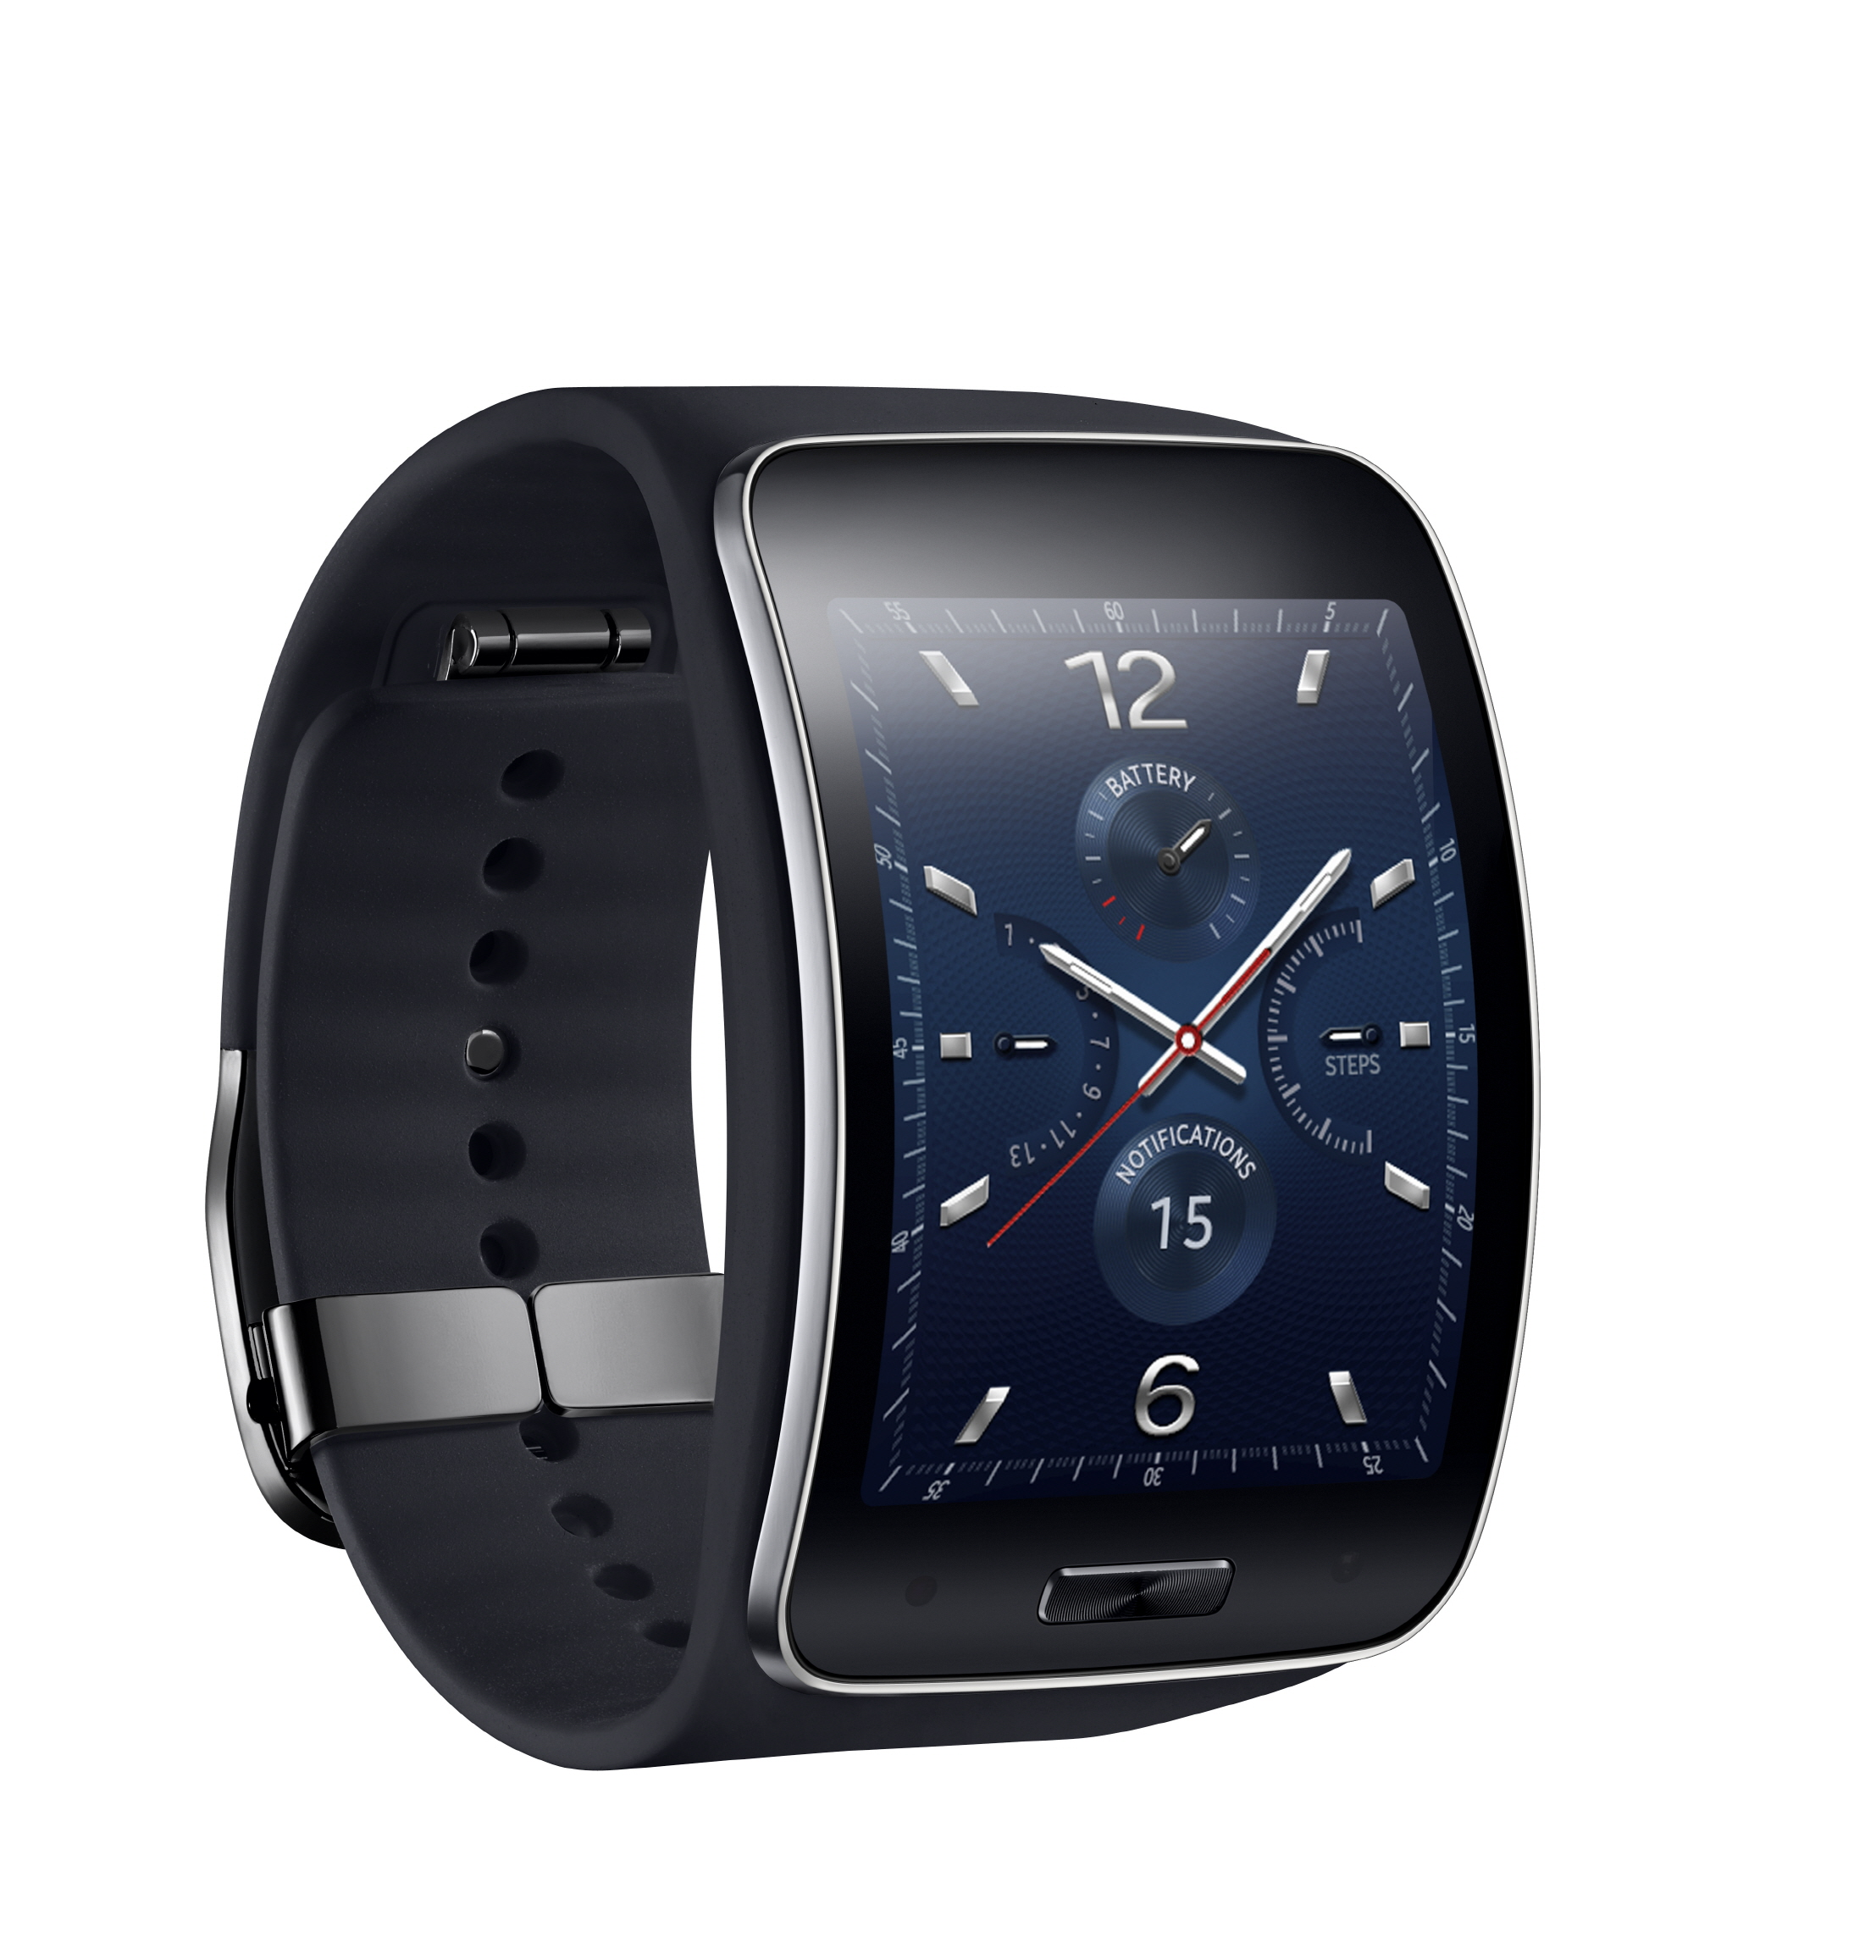 moto 360 vs samsung gear s vs lg g watch r which looks best. Black Bedroom Furniture Sets. Home Design Ideas